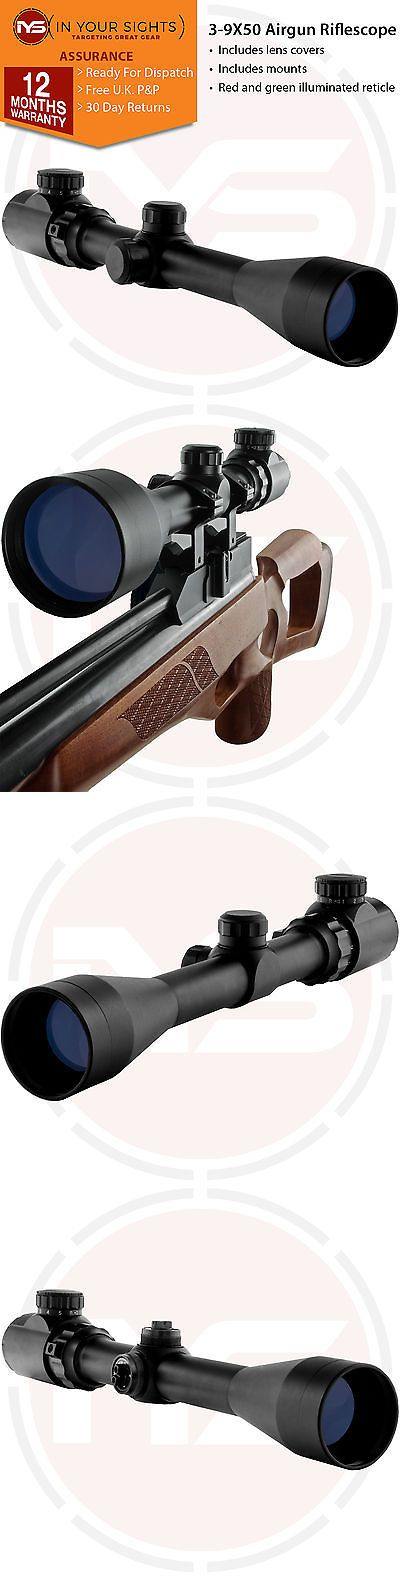 Snap Caps 177882: 3-9X50 Air Gun Rifle Scope +11Mm Dovetail Mounts, Air Rifle Hunting Scope -> BUY IT NOW ONLY: $32.26 on eBay!